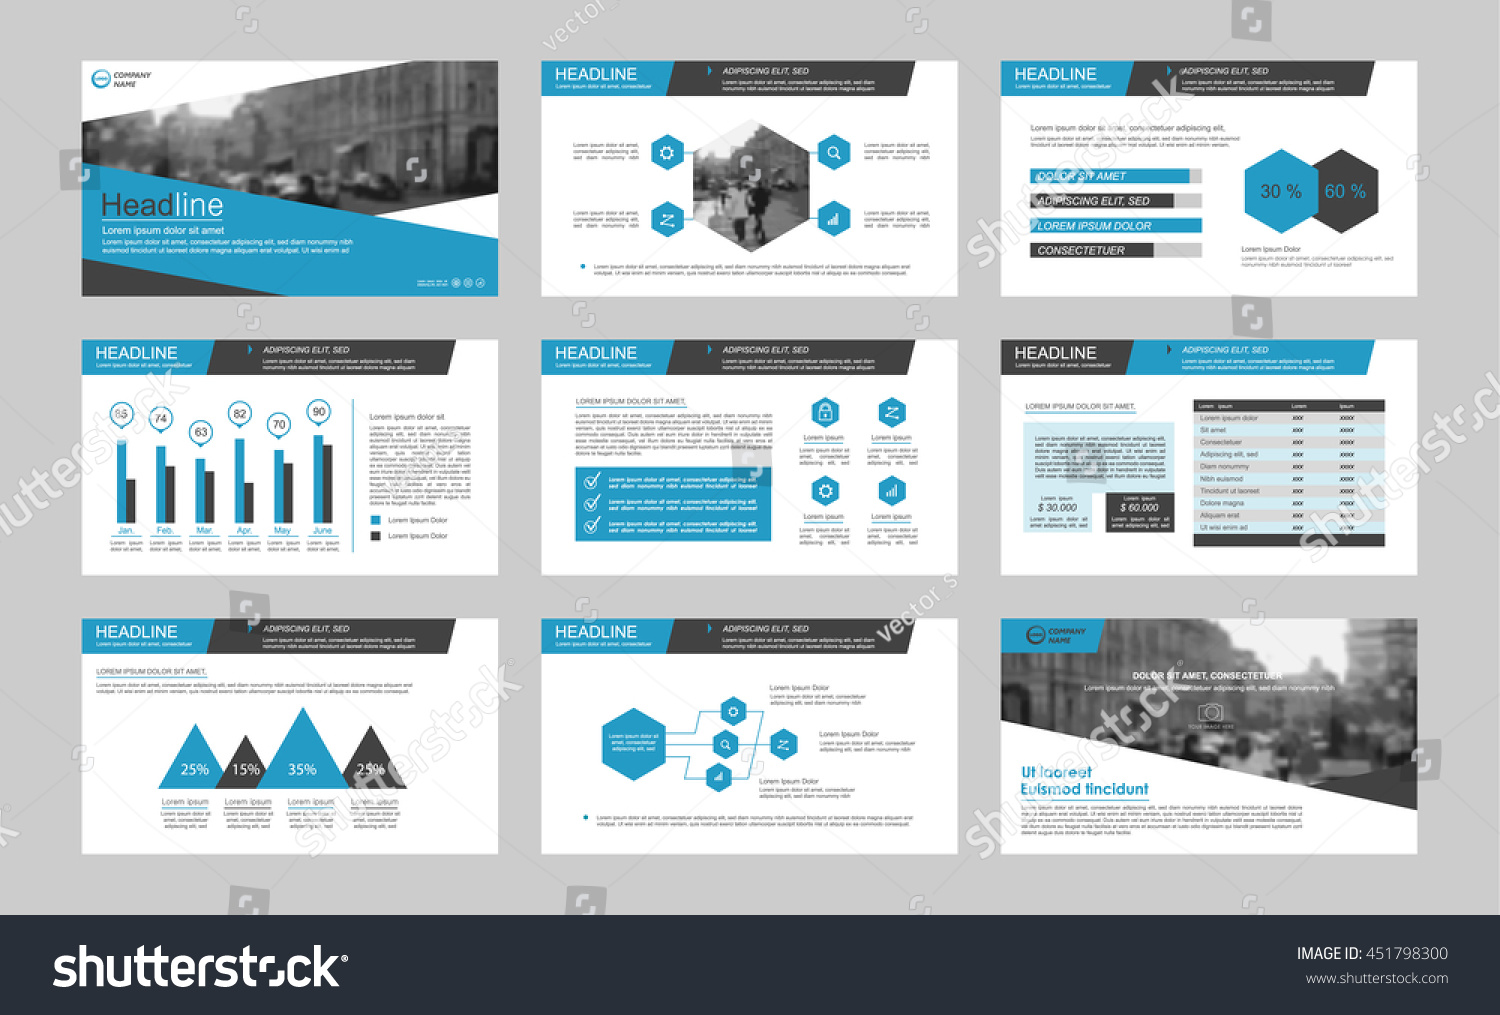 Powerpoint template design professional listmachinepro professional online image photo editor shutterstock editor powerpoint template design professional listmachinepro toneelgroepblik Images